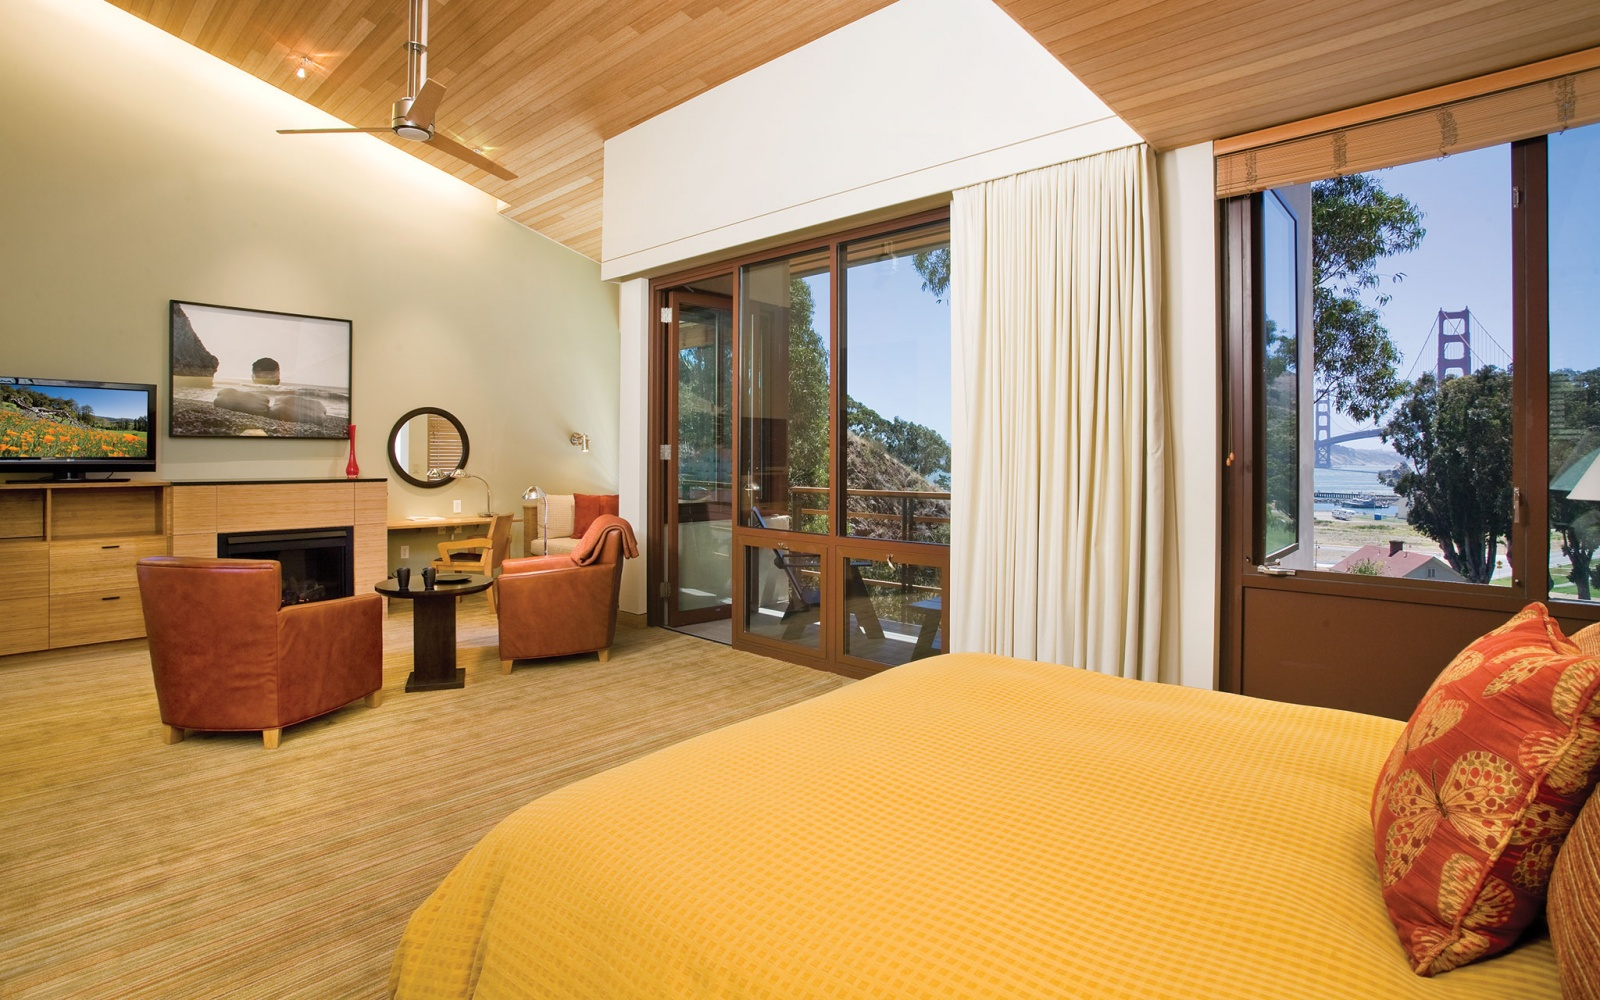 No. 15 Cavallo Point – The Lodge at the Golden Gate, Sausalito, CA